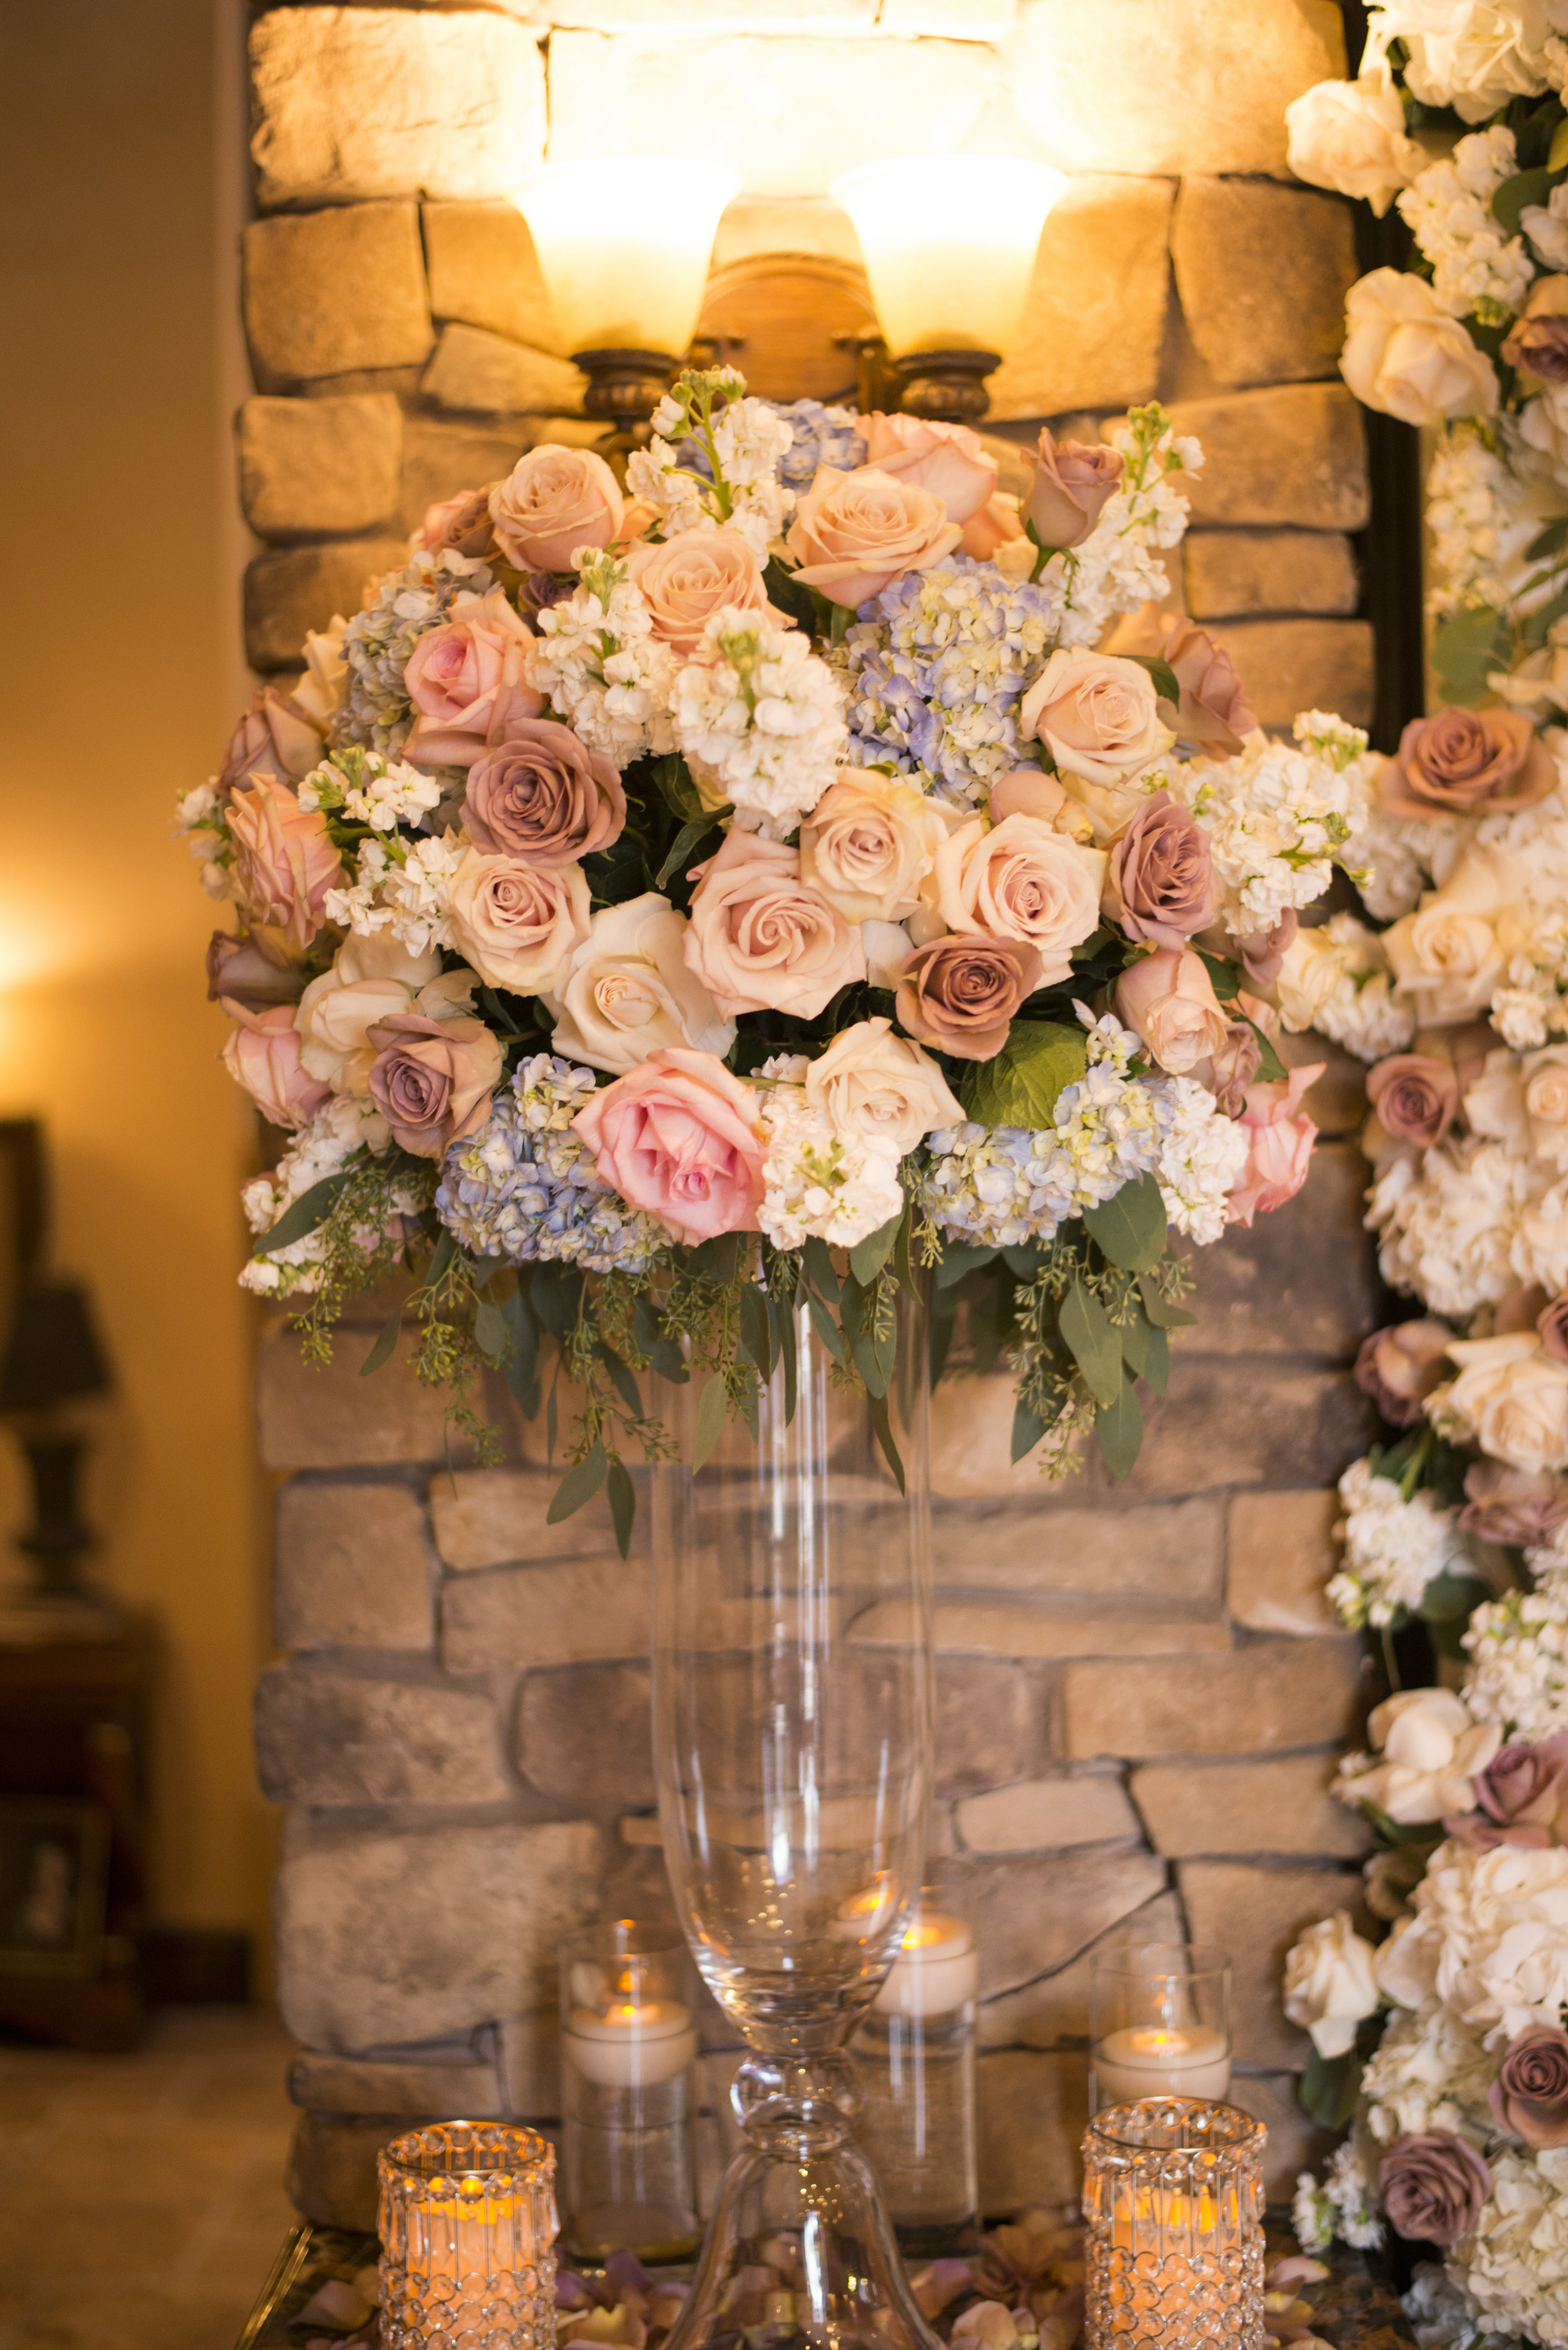 Big pink floral arrangement surrounded by candles at private estate wedding in Las Vegas. Luxury Las Vegas Wedding Planner Andrea Eppolito. Image by AltF Photography.